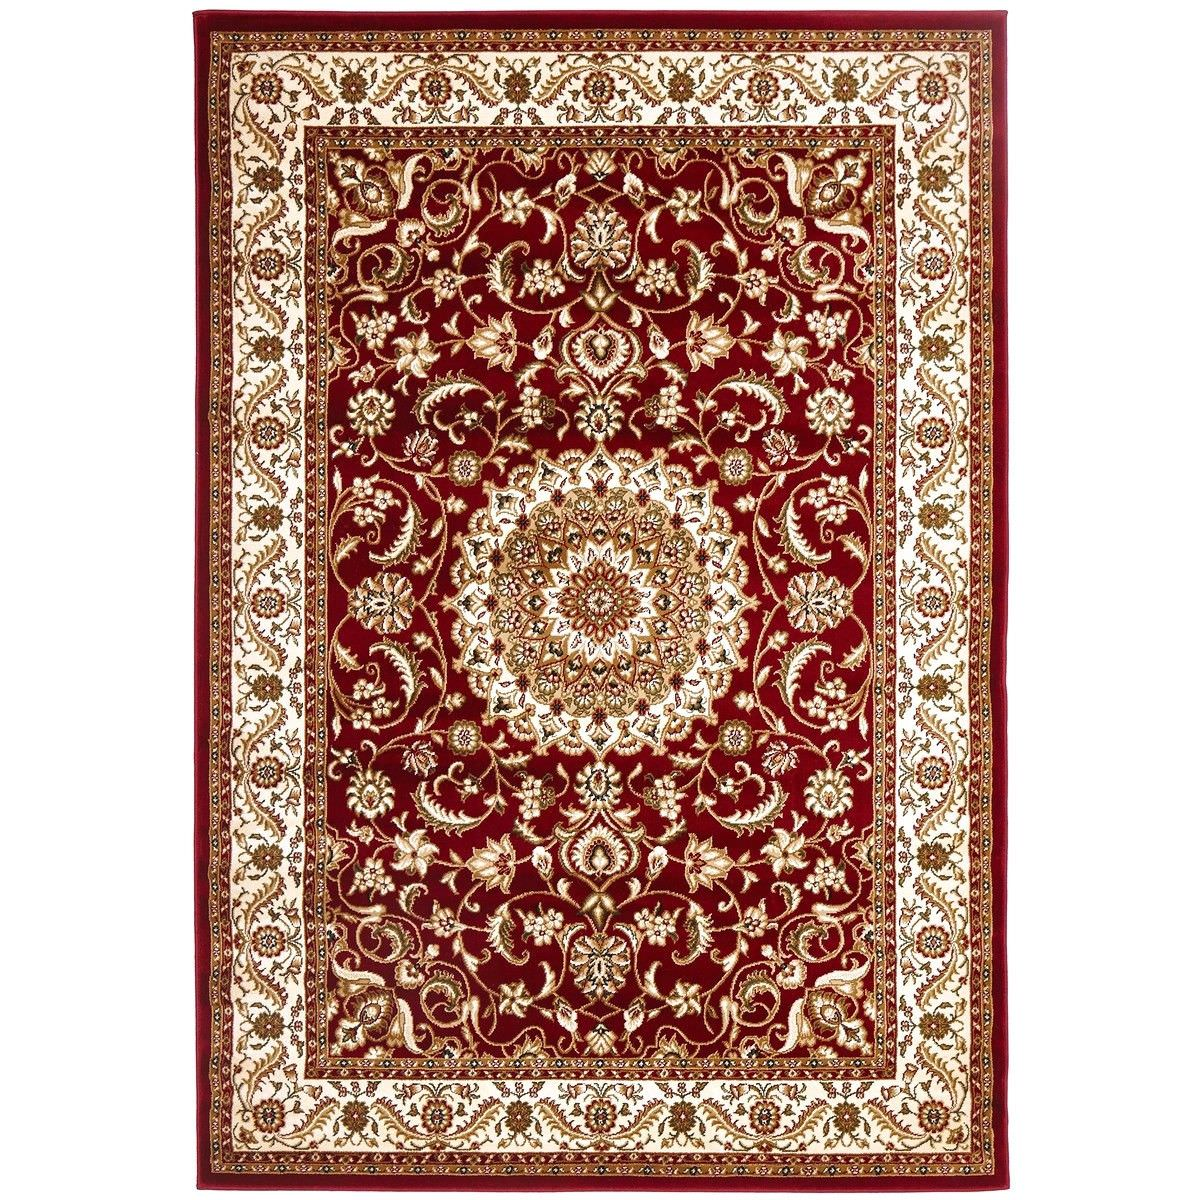 Sydney Medallion Turkish Made Oriental Rug, 150x80cm, Red / Ivory